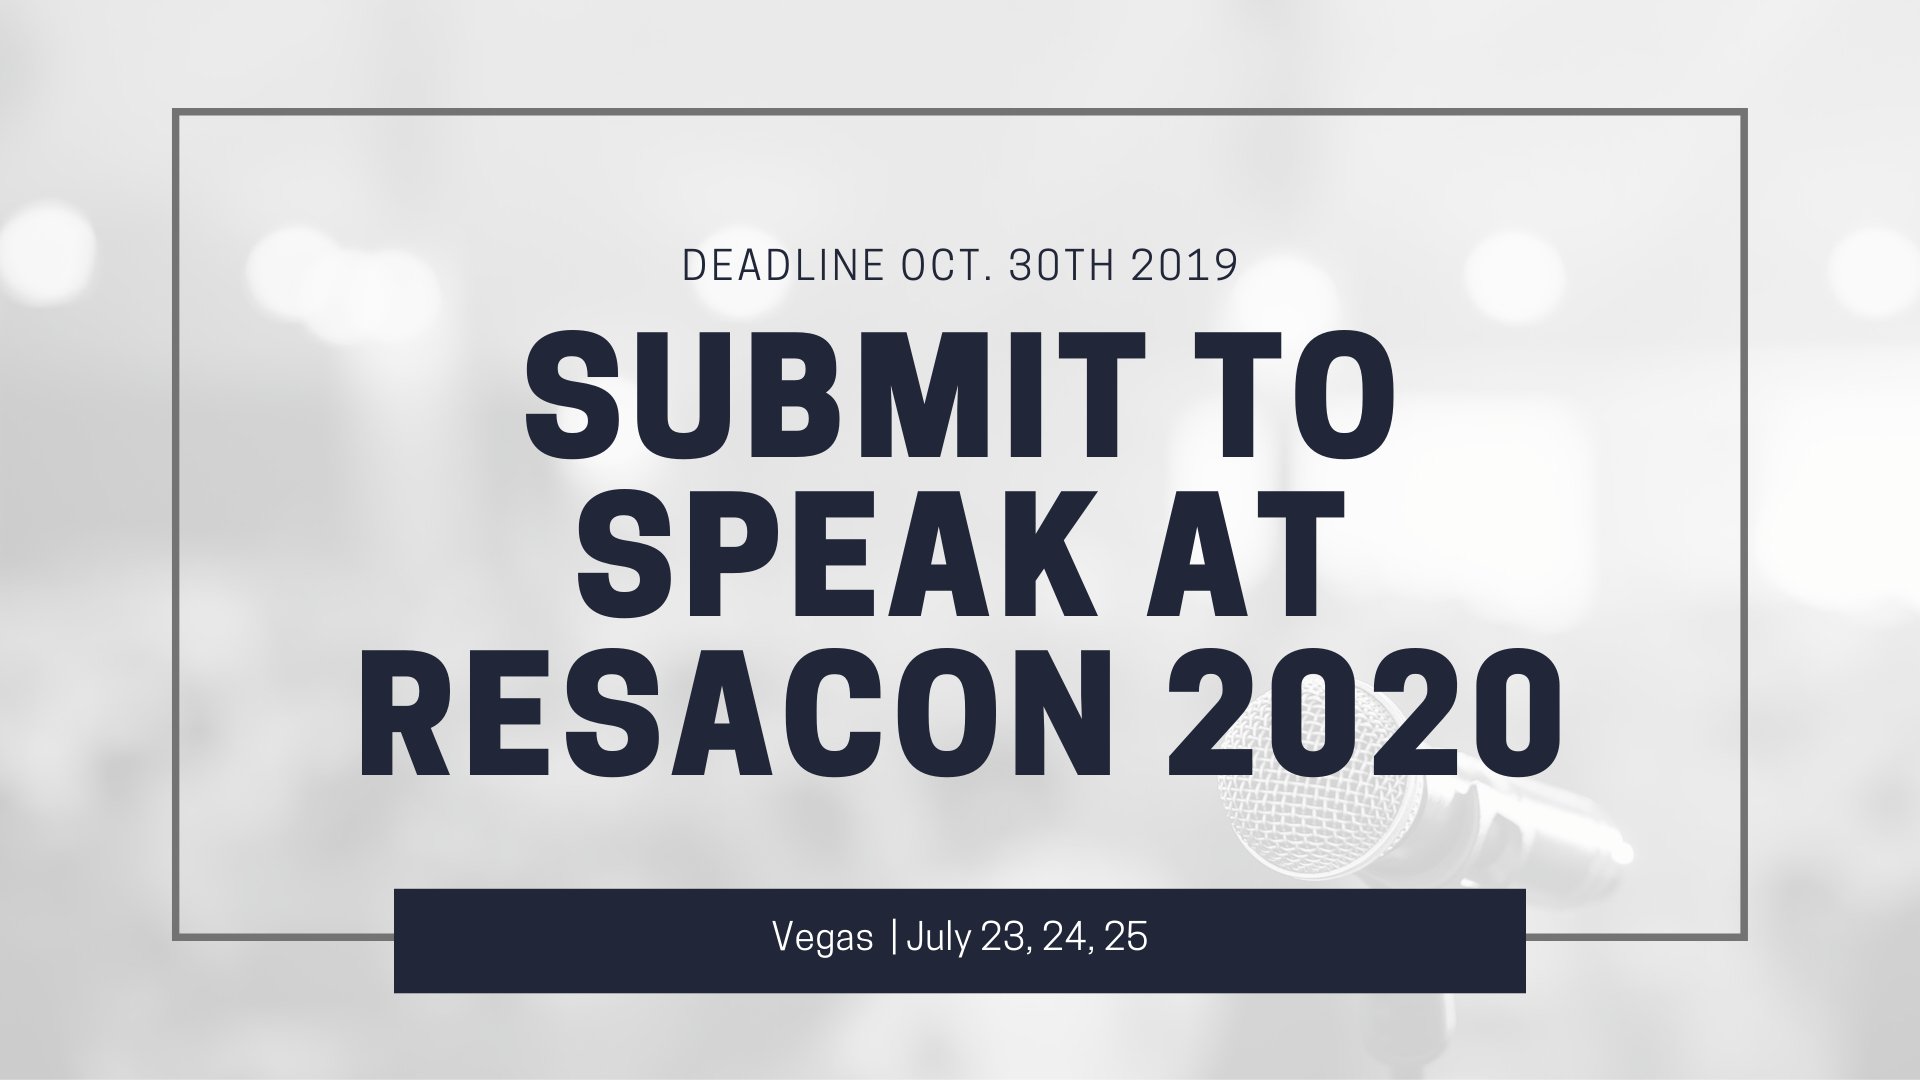 resacon 2020 submit to speak